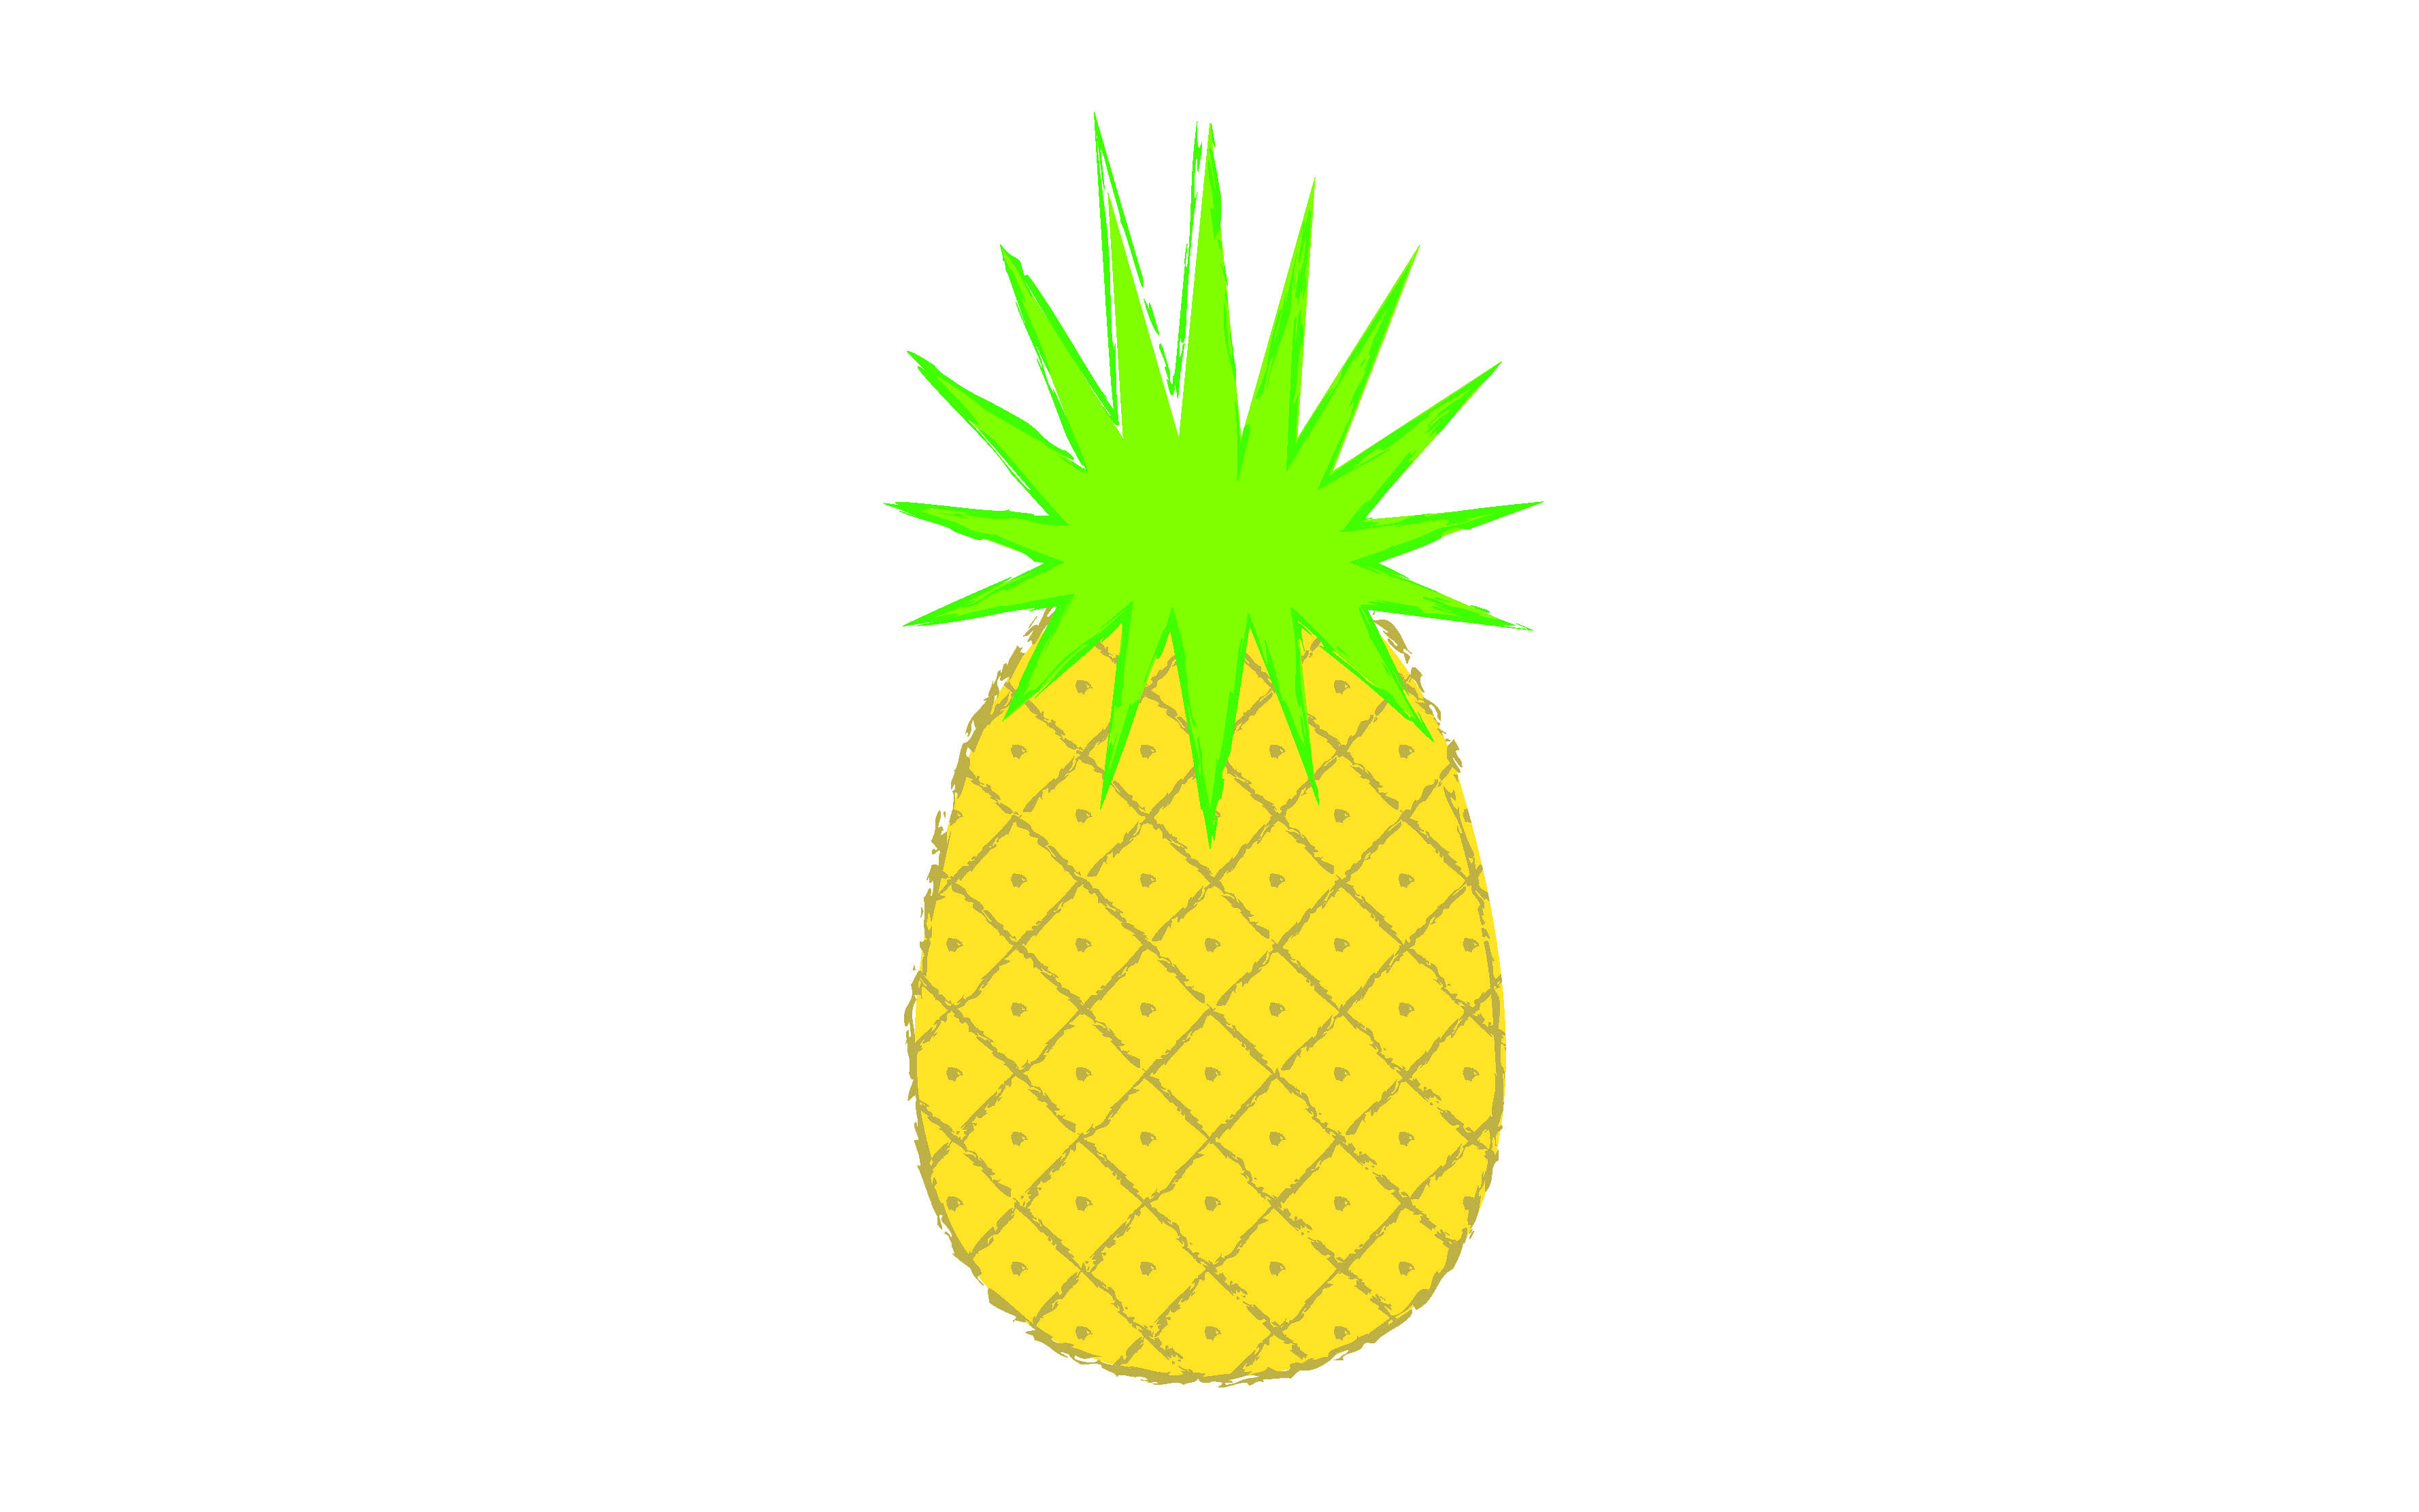 Pineapple iphone background